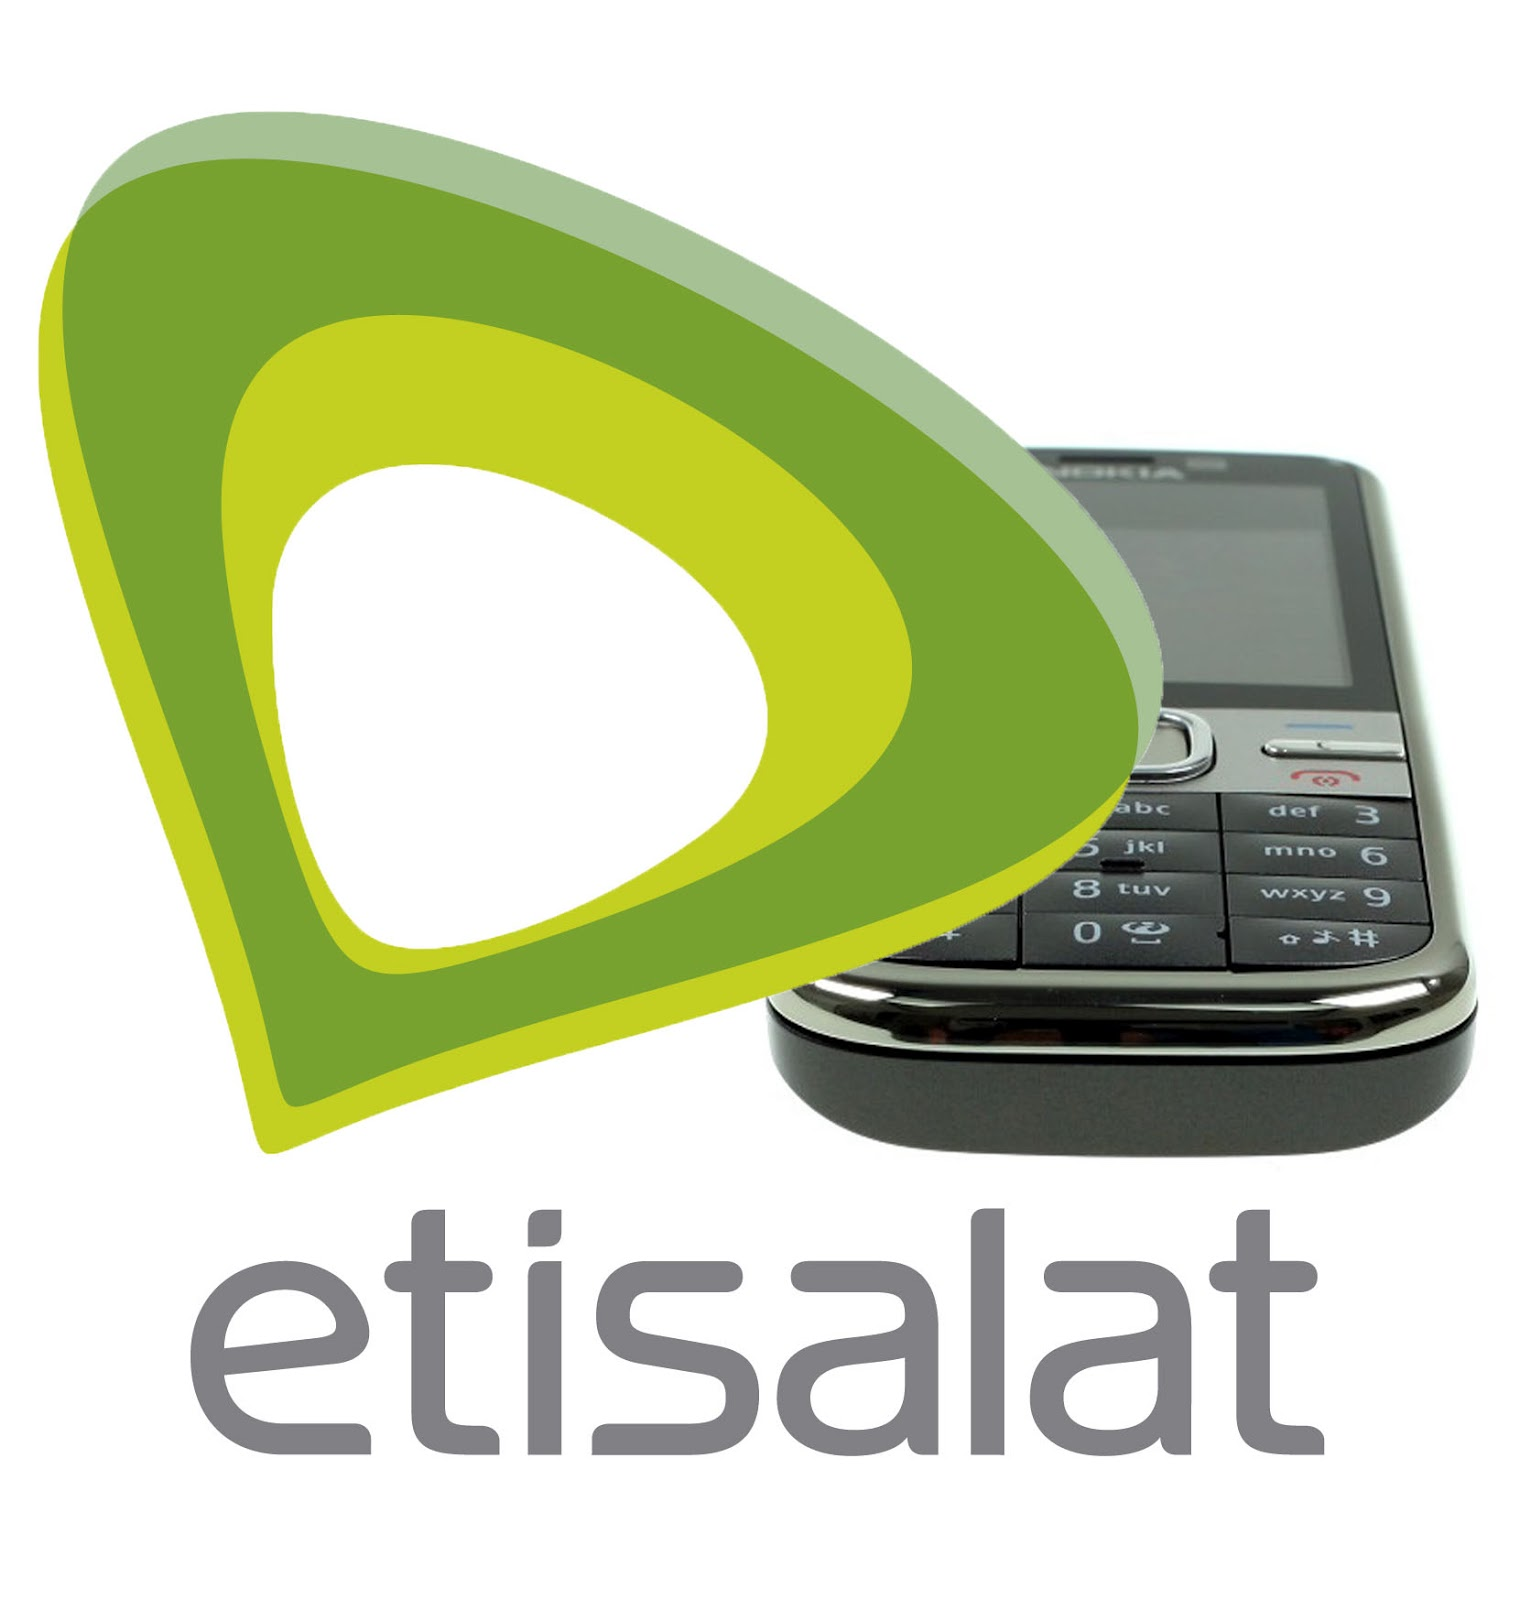 Get 1GB for just N150 Only On your Etisalat Sim (100% Working)